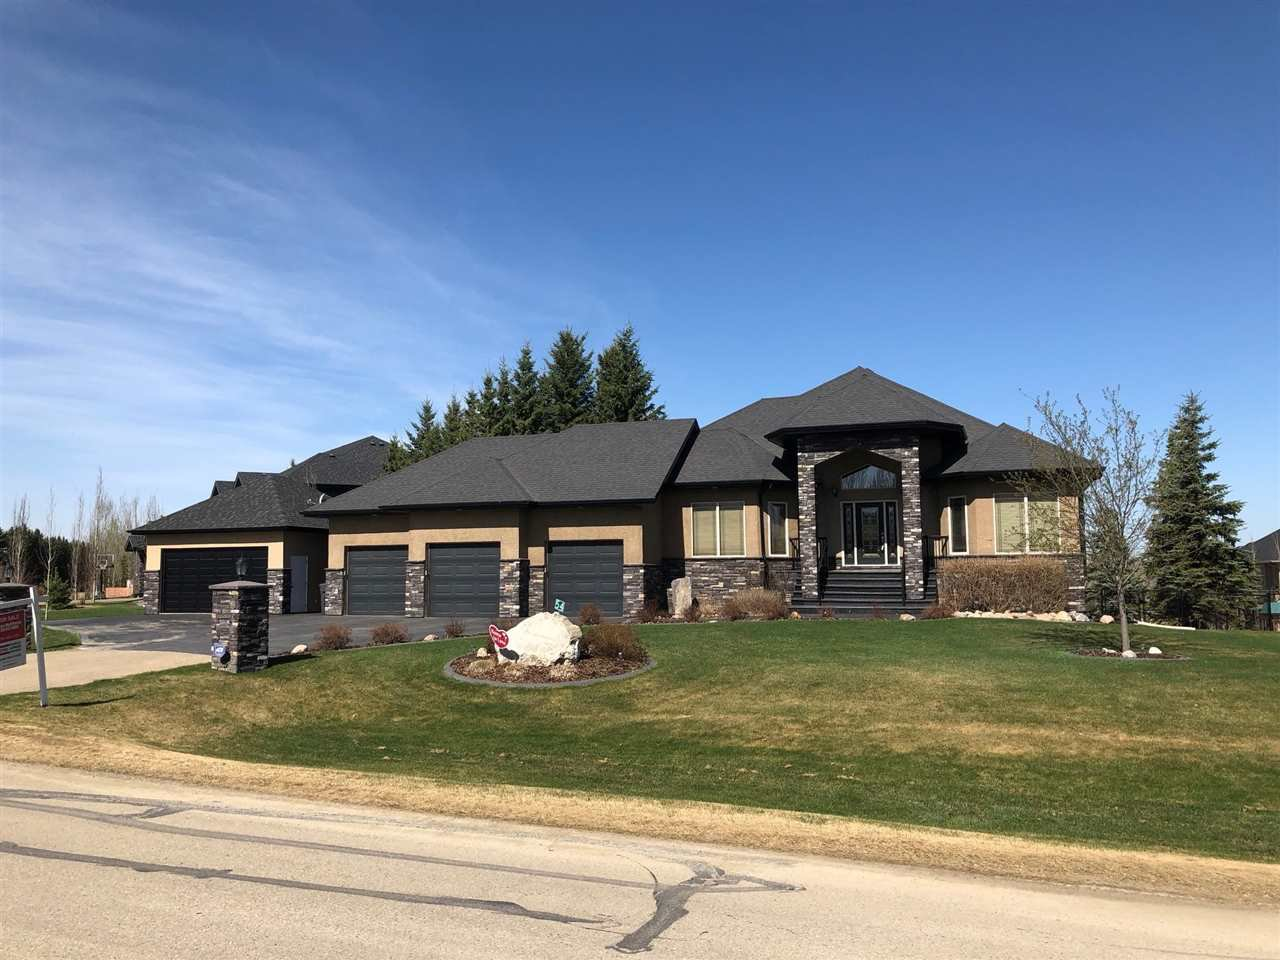 Main Photo: 54 53217 RGE RD 263: Rural Parkland County House for sale : MLS®# E4154236